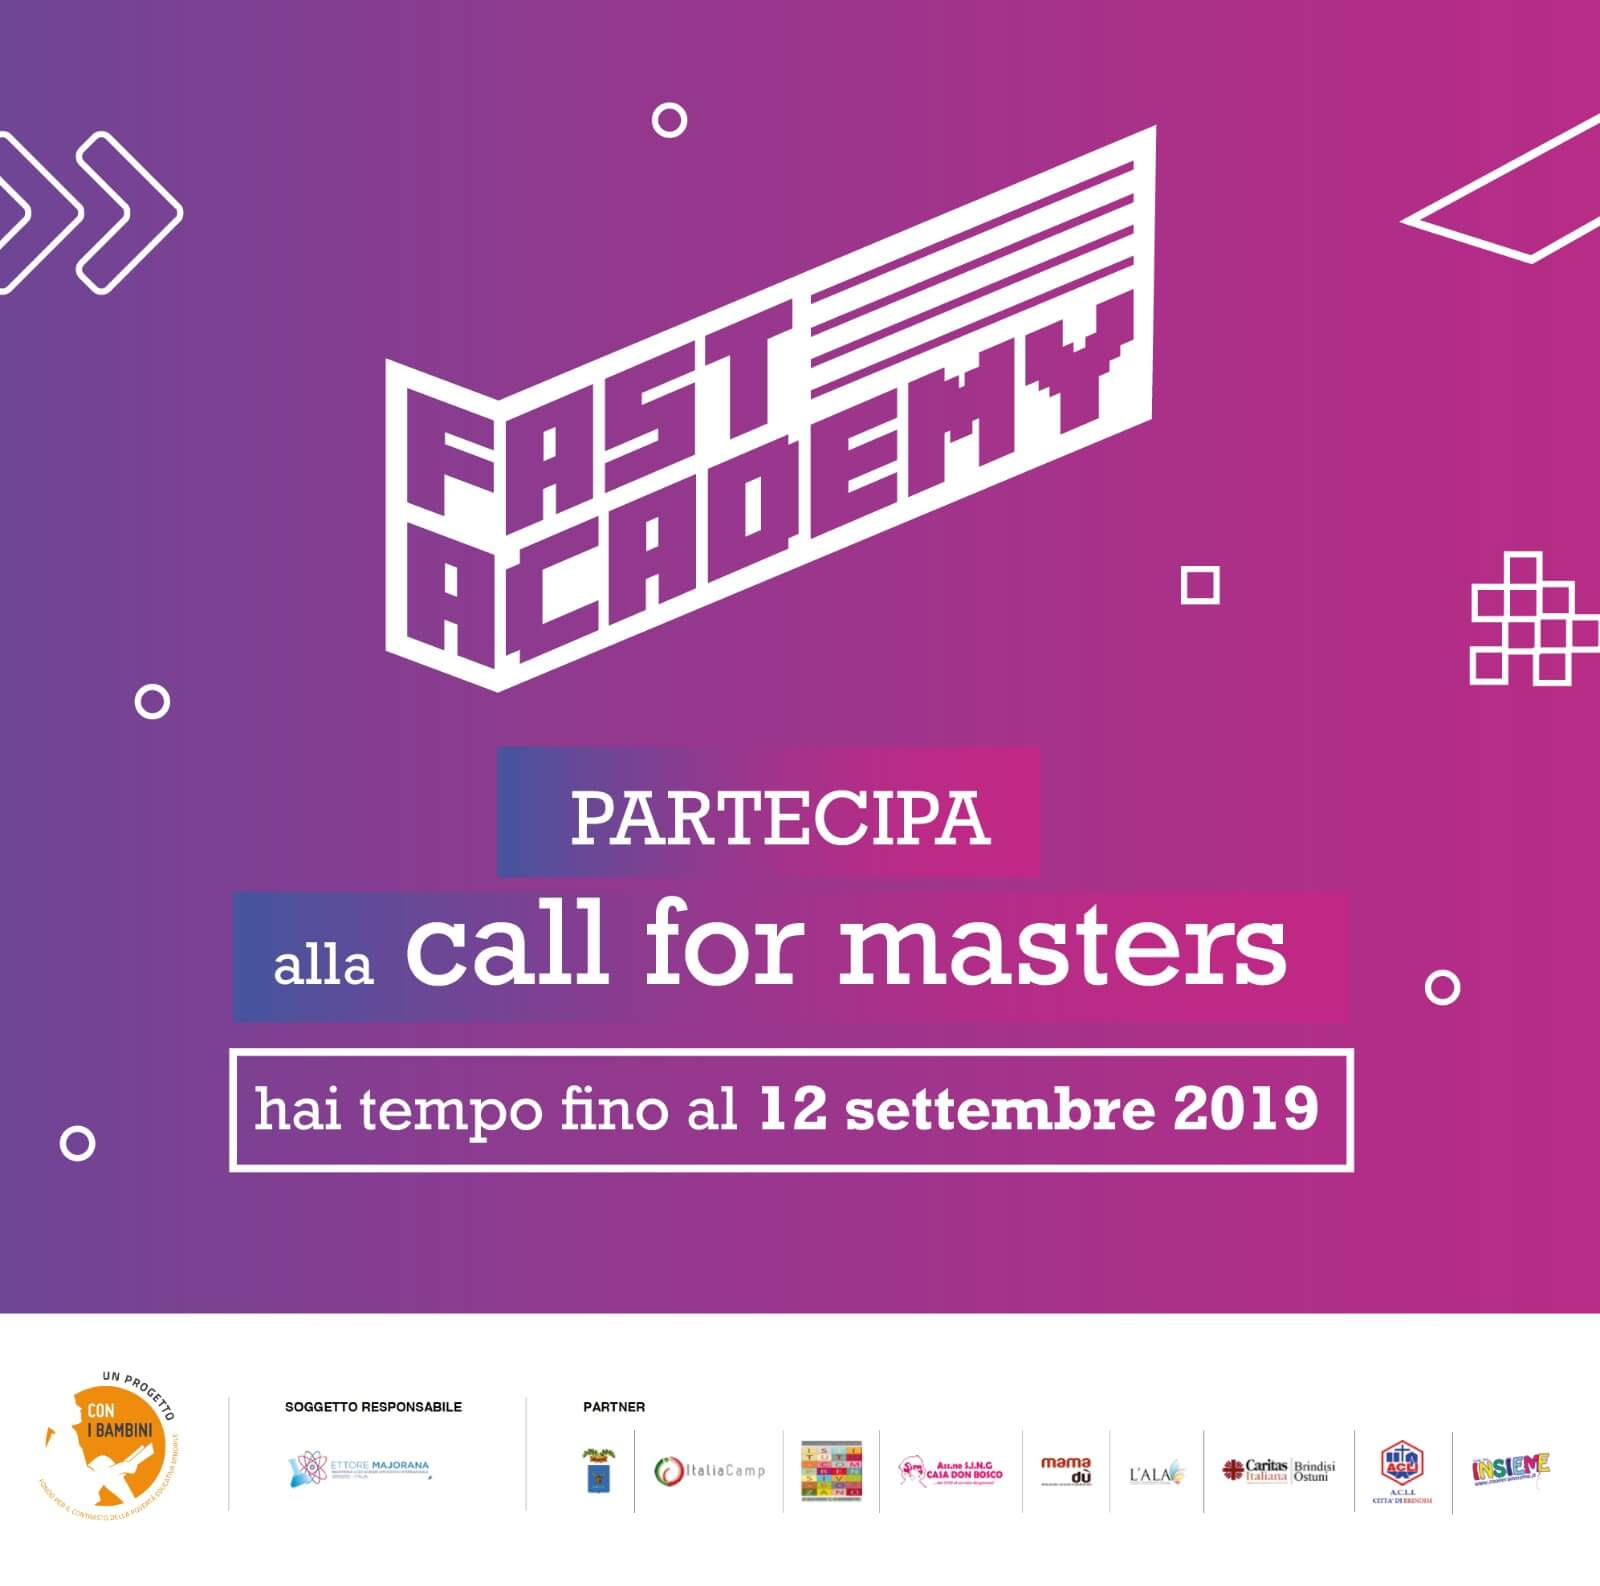 FAST Academy: al via la Call for Masters per la creazione di una community di educatori